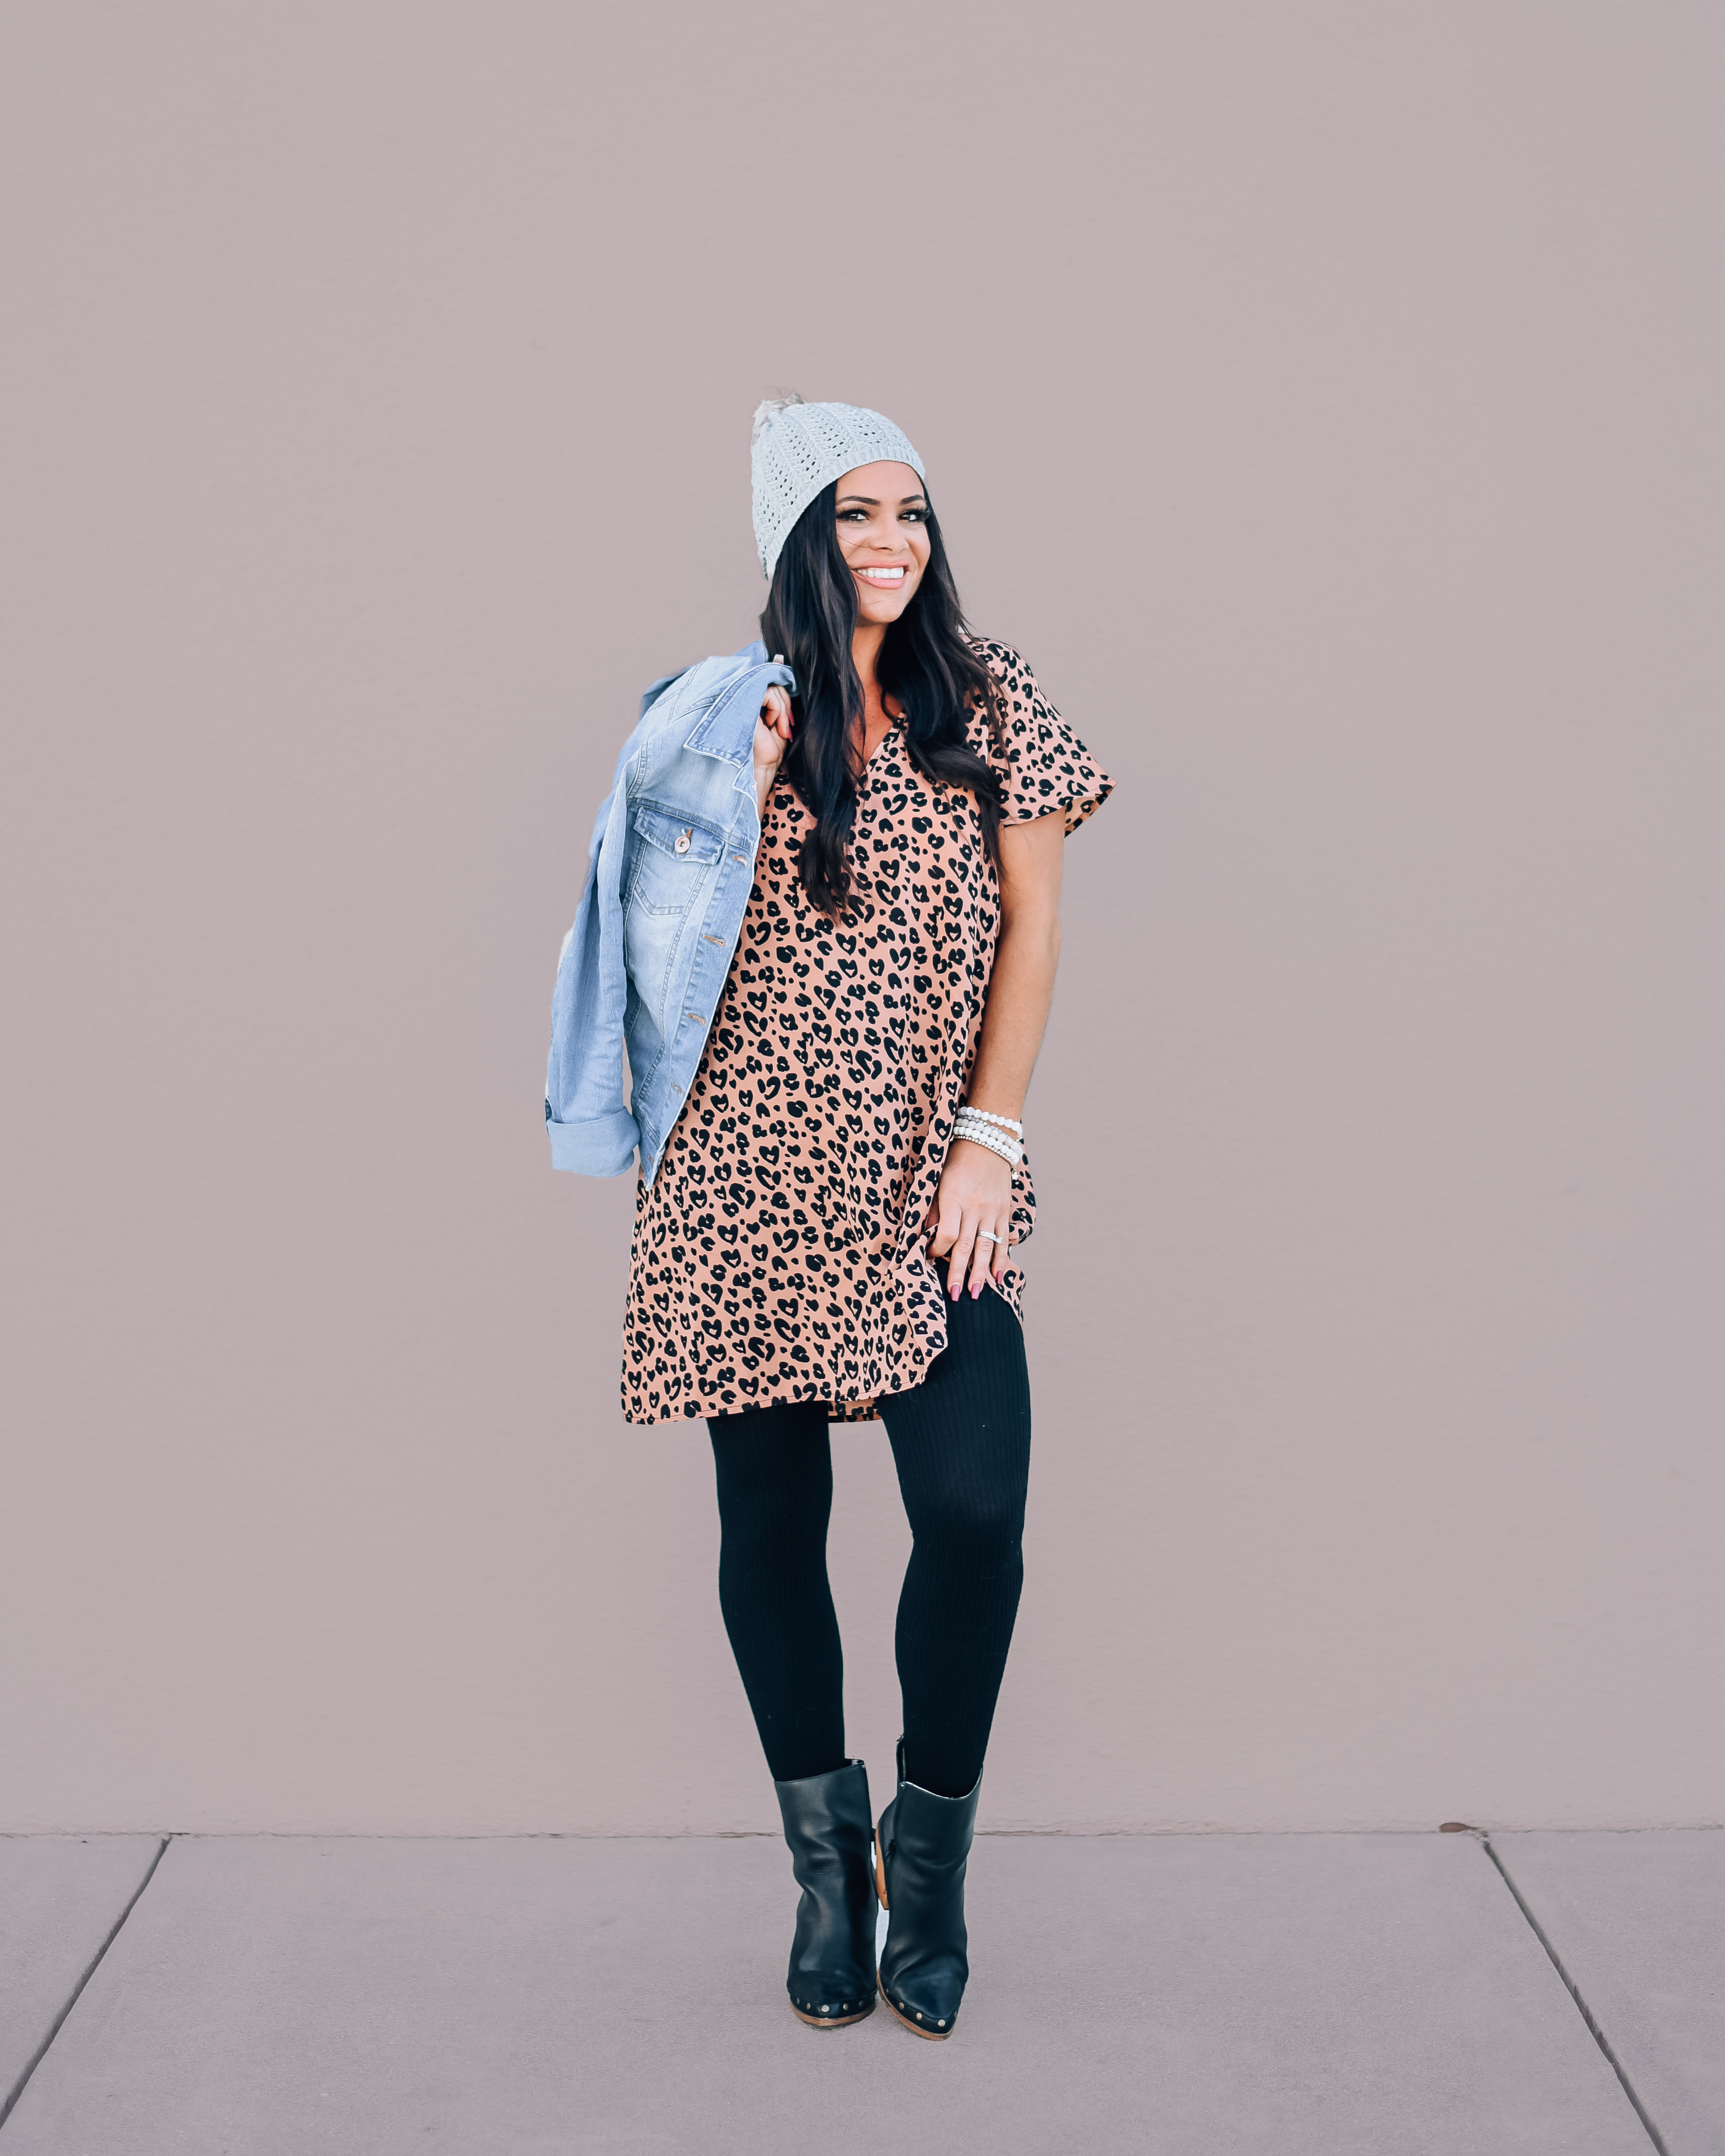 """BLUSH LEOPARD SHORT SLEEVE TUNIC DRESS. 100% POLYESTER. PIPER IS 5'4"""", SIZE 0, WEARING A SMALL. NIKI IS SIZE 14, WEARING AN XLARGE. XS 0-2 S 4-6 M 8-10 L 10-12 XL 12-14"""